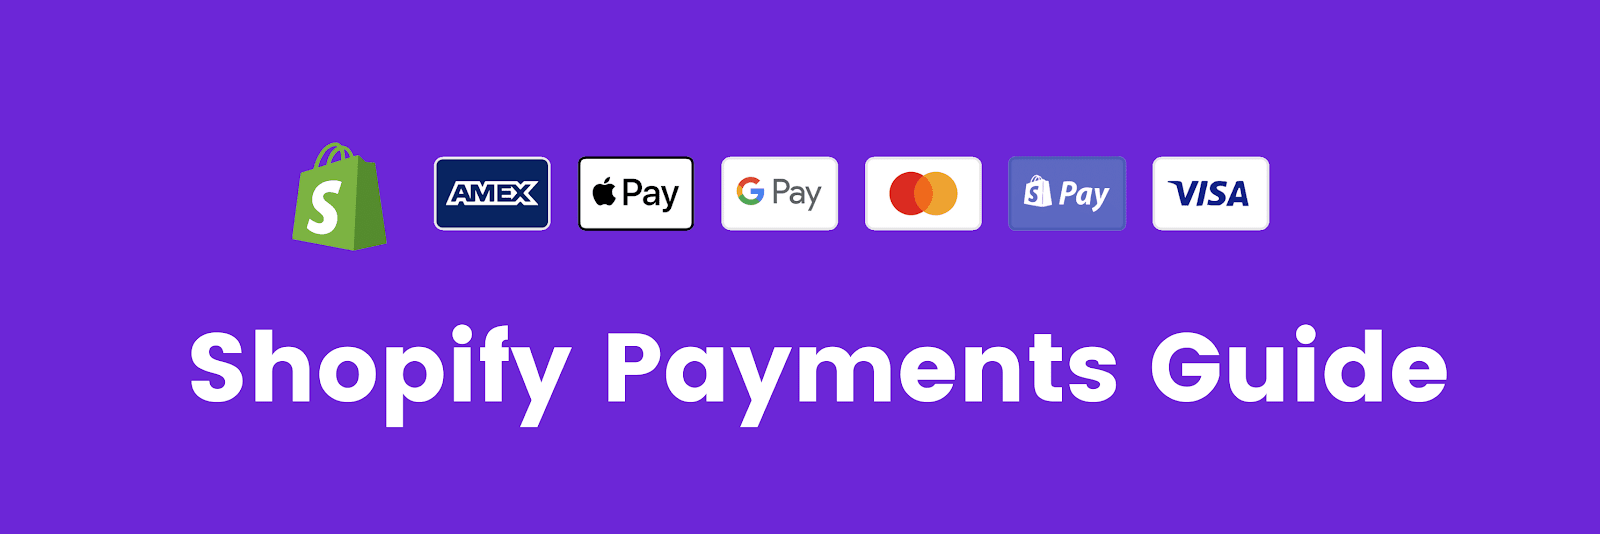 Shopify Payments